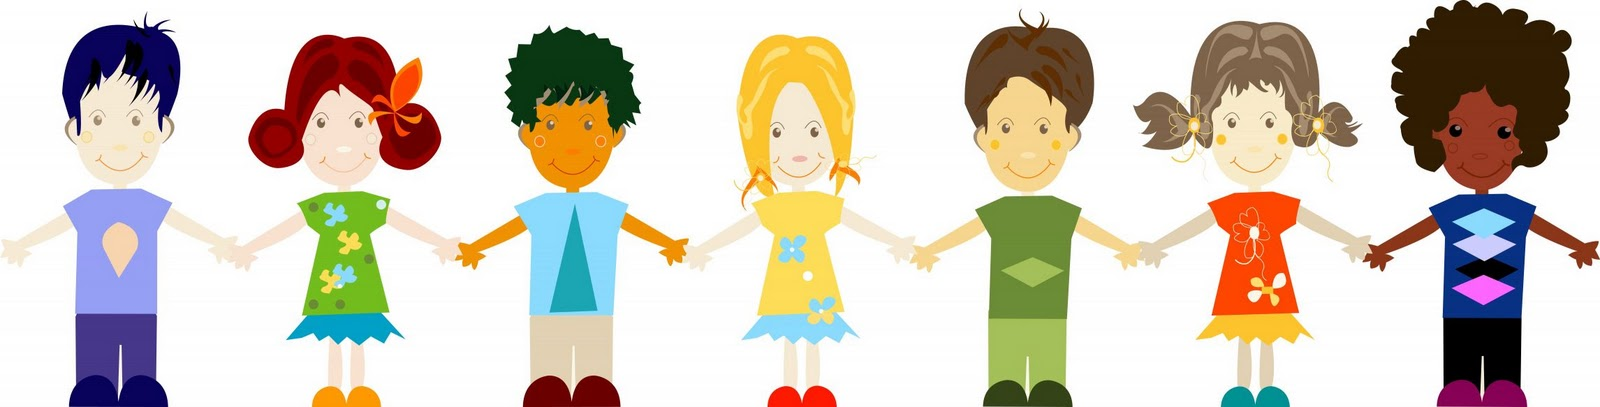 Diversity clipart diverse class. Minority families at private